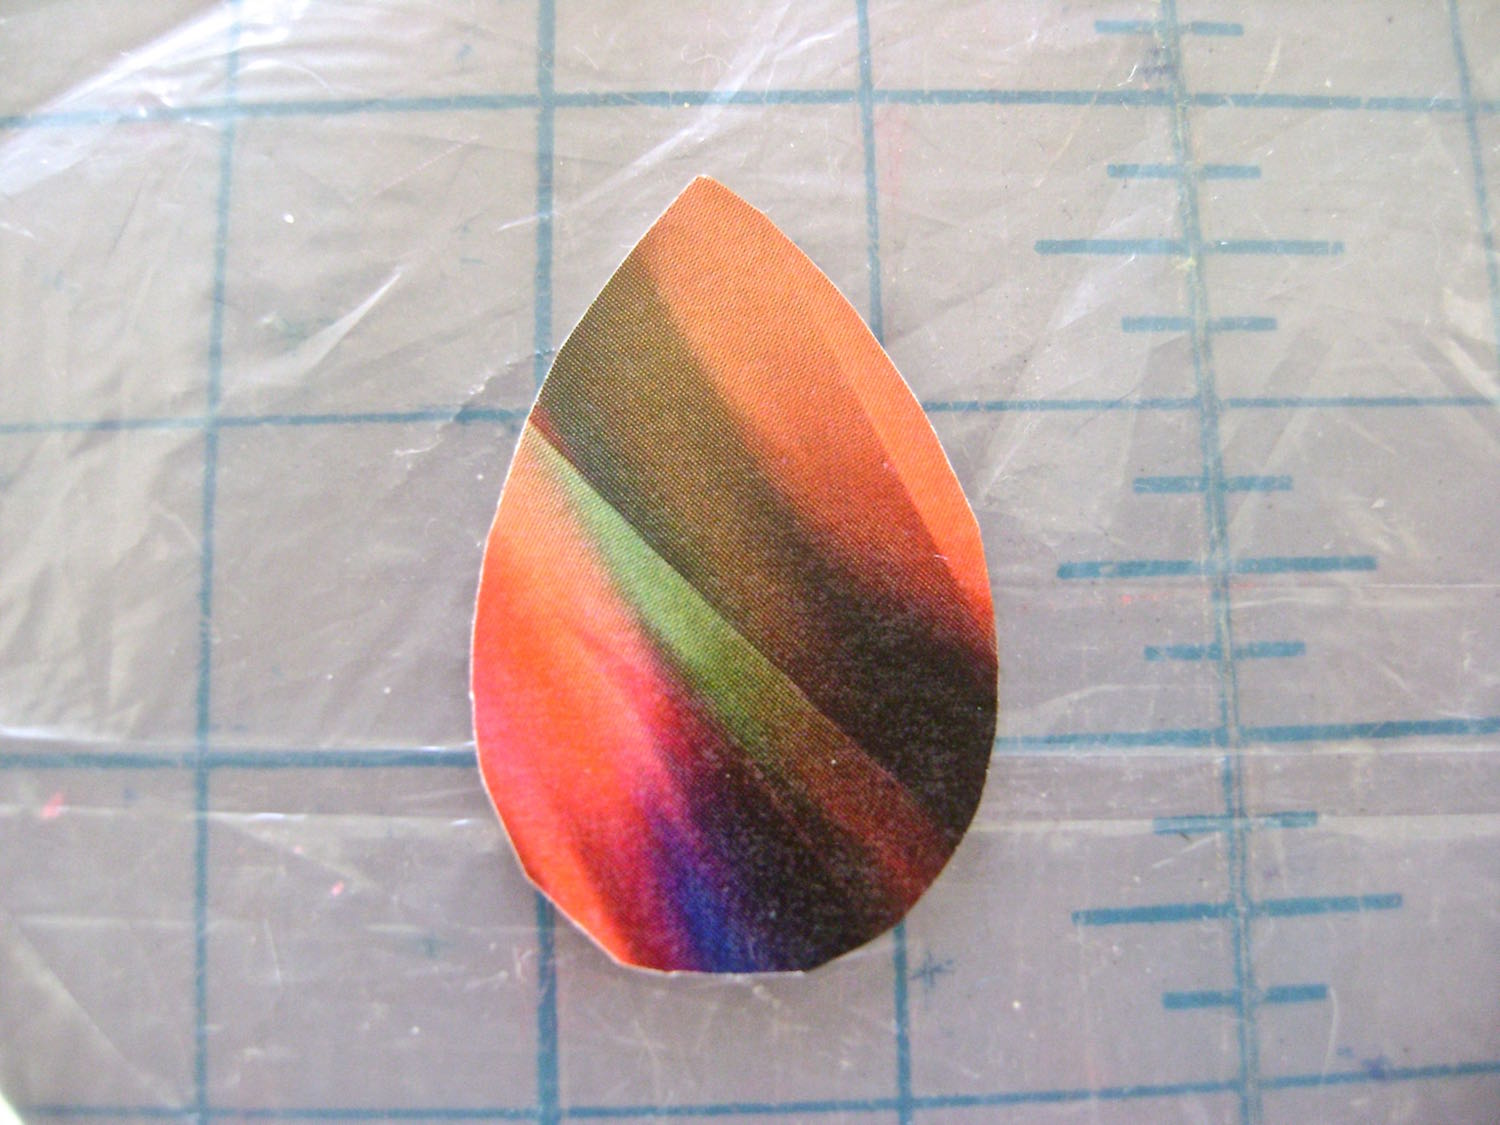 step 5 - Cut out the teardrop shape from your image.  step 6 - Hold the color image behind the glass.  The fit is accurate if the paper is slightly inside the border of the glass when you view it from the back side, and the image appears to reach to all edges when you look at it from the front.  step 7 - Clean both sides of the glass thoroughly.  Pour some Fast Finish into a container.   Dampen a one-inch wide brush then squeeze out the moisture in a towel.  Sponge brushes will cause bubbles with this product so choose a bristle brush.